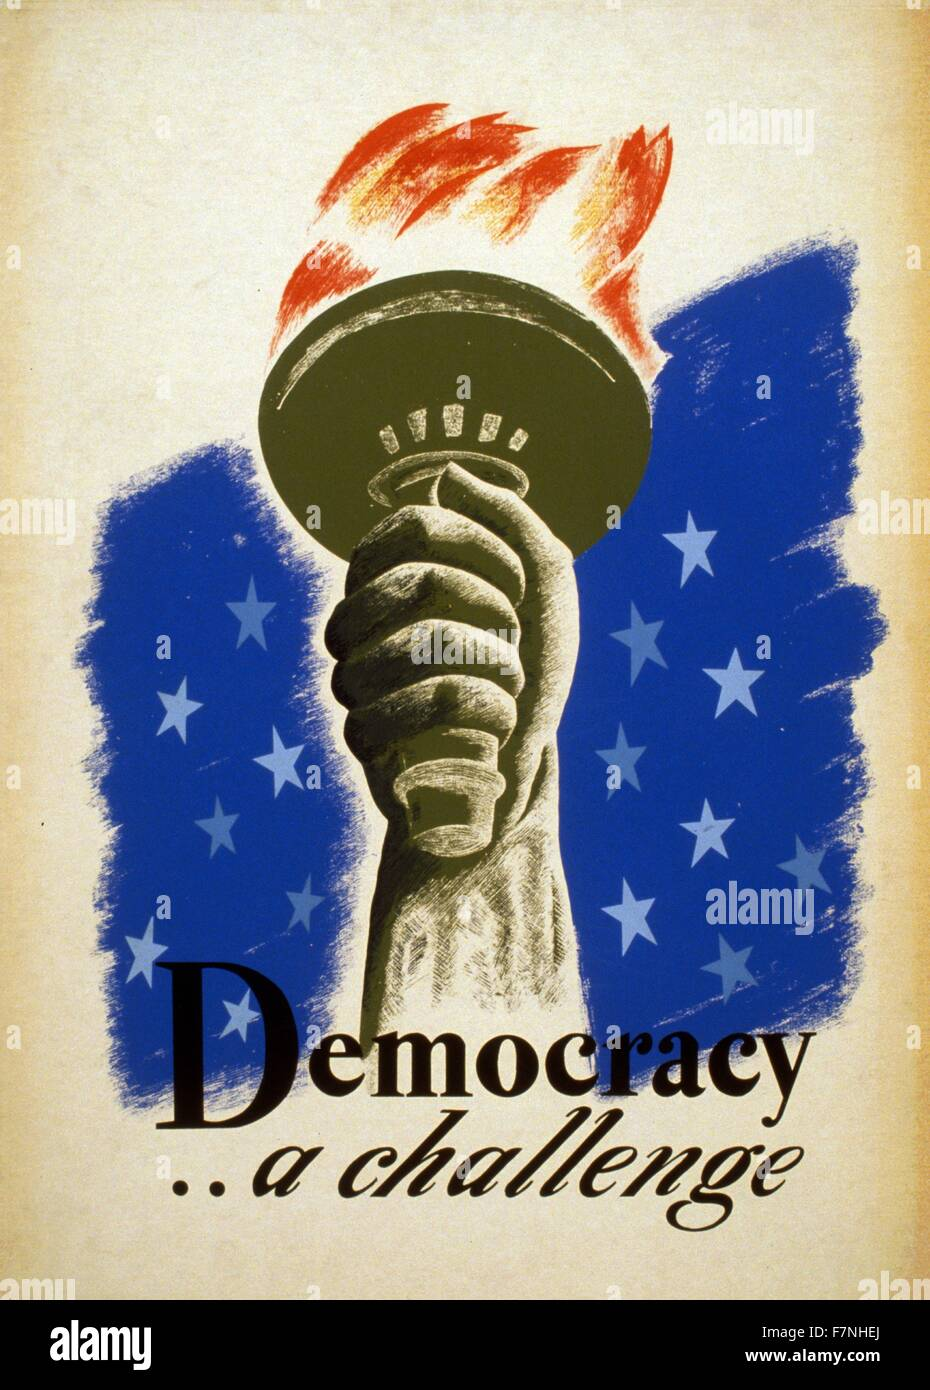 Democracy .. a challenge. 1940 Poster for democracy showing the hand and torch of the Statue of Liberty. Federal - Stock Image